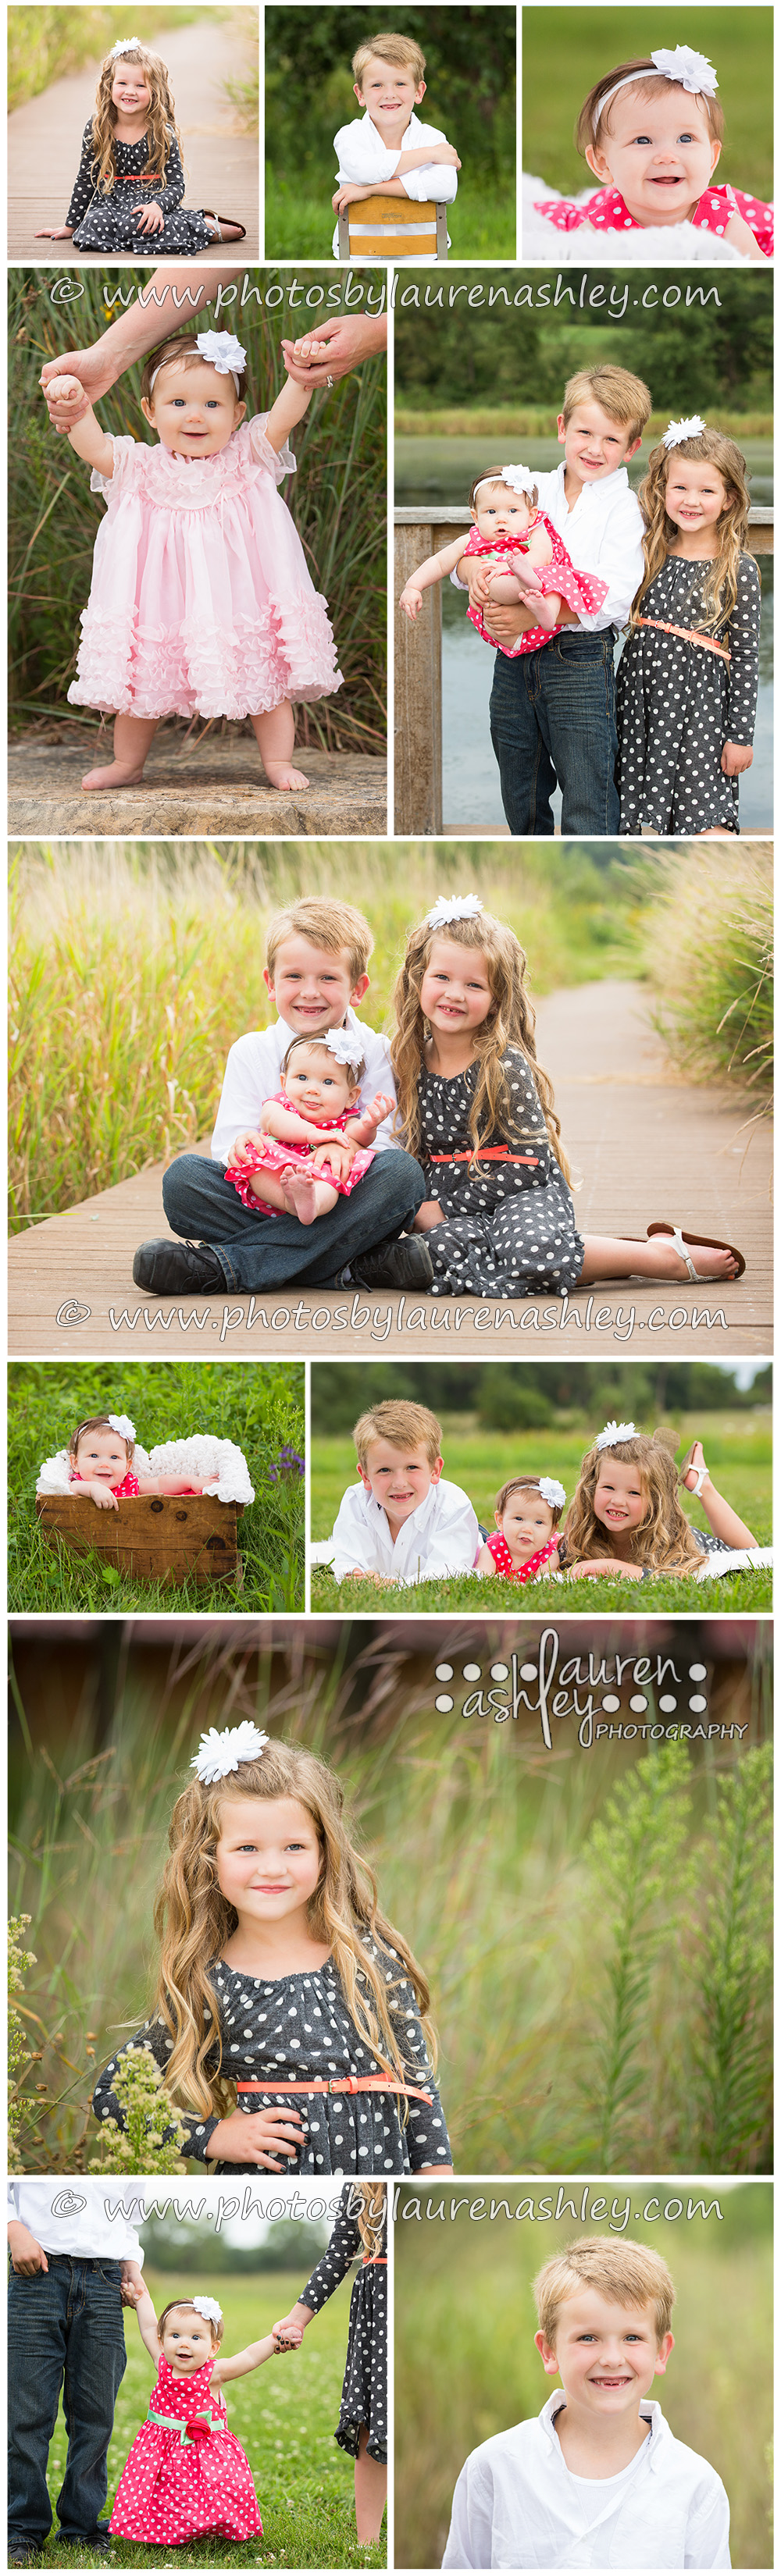 Outdoor children's photography session at Wickiup Hill Lodge in Toddville, IA